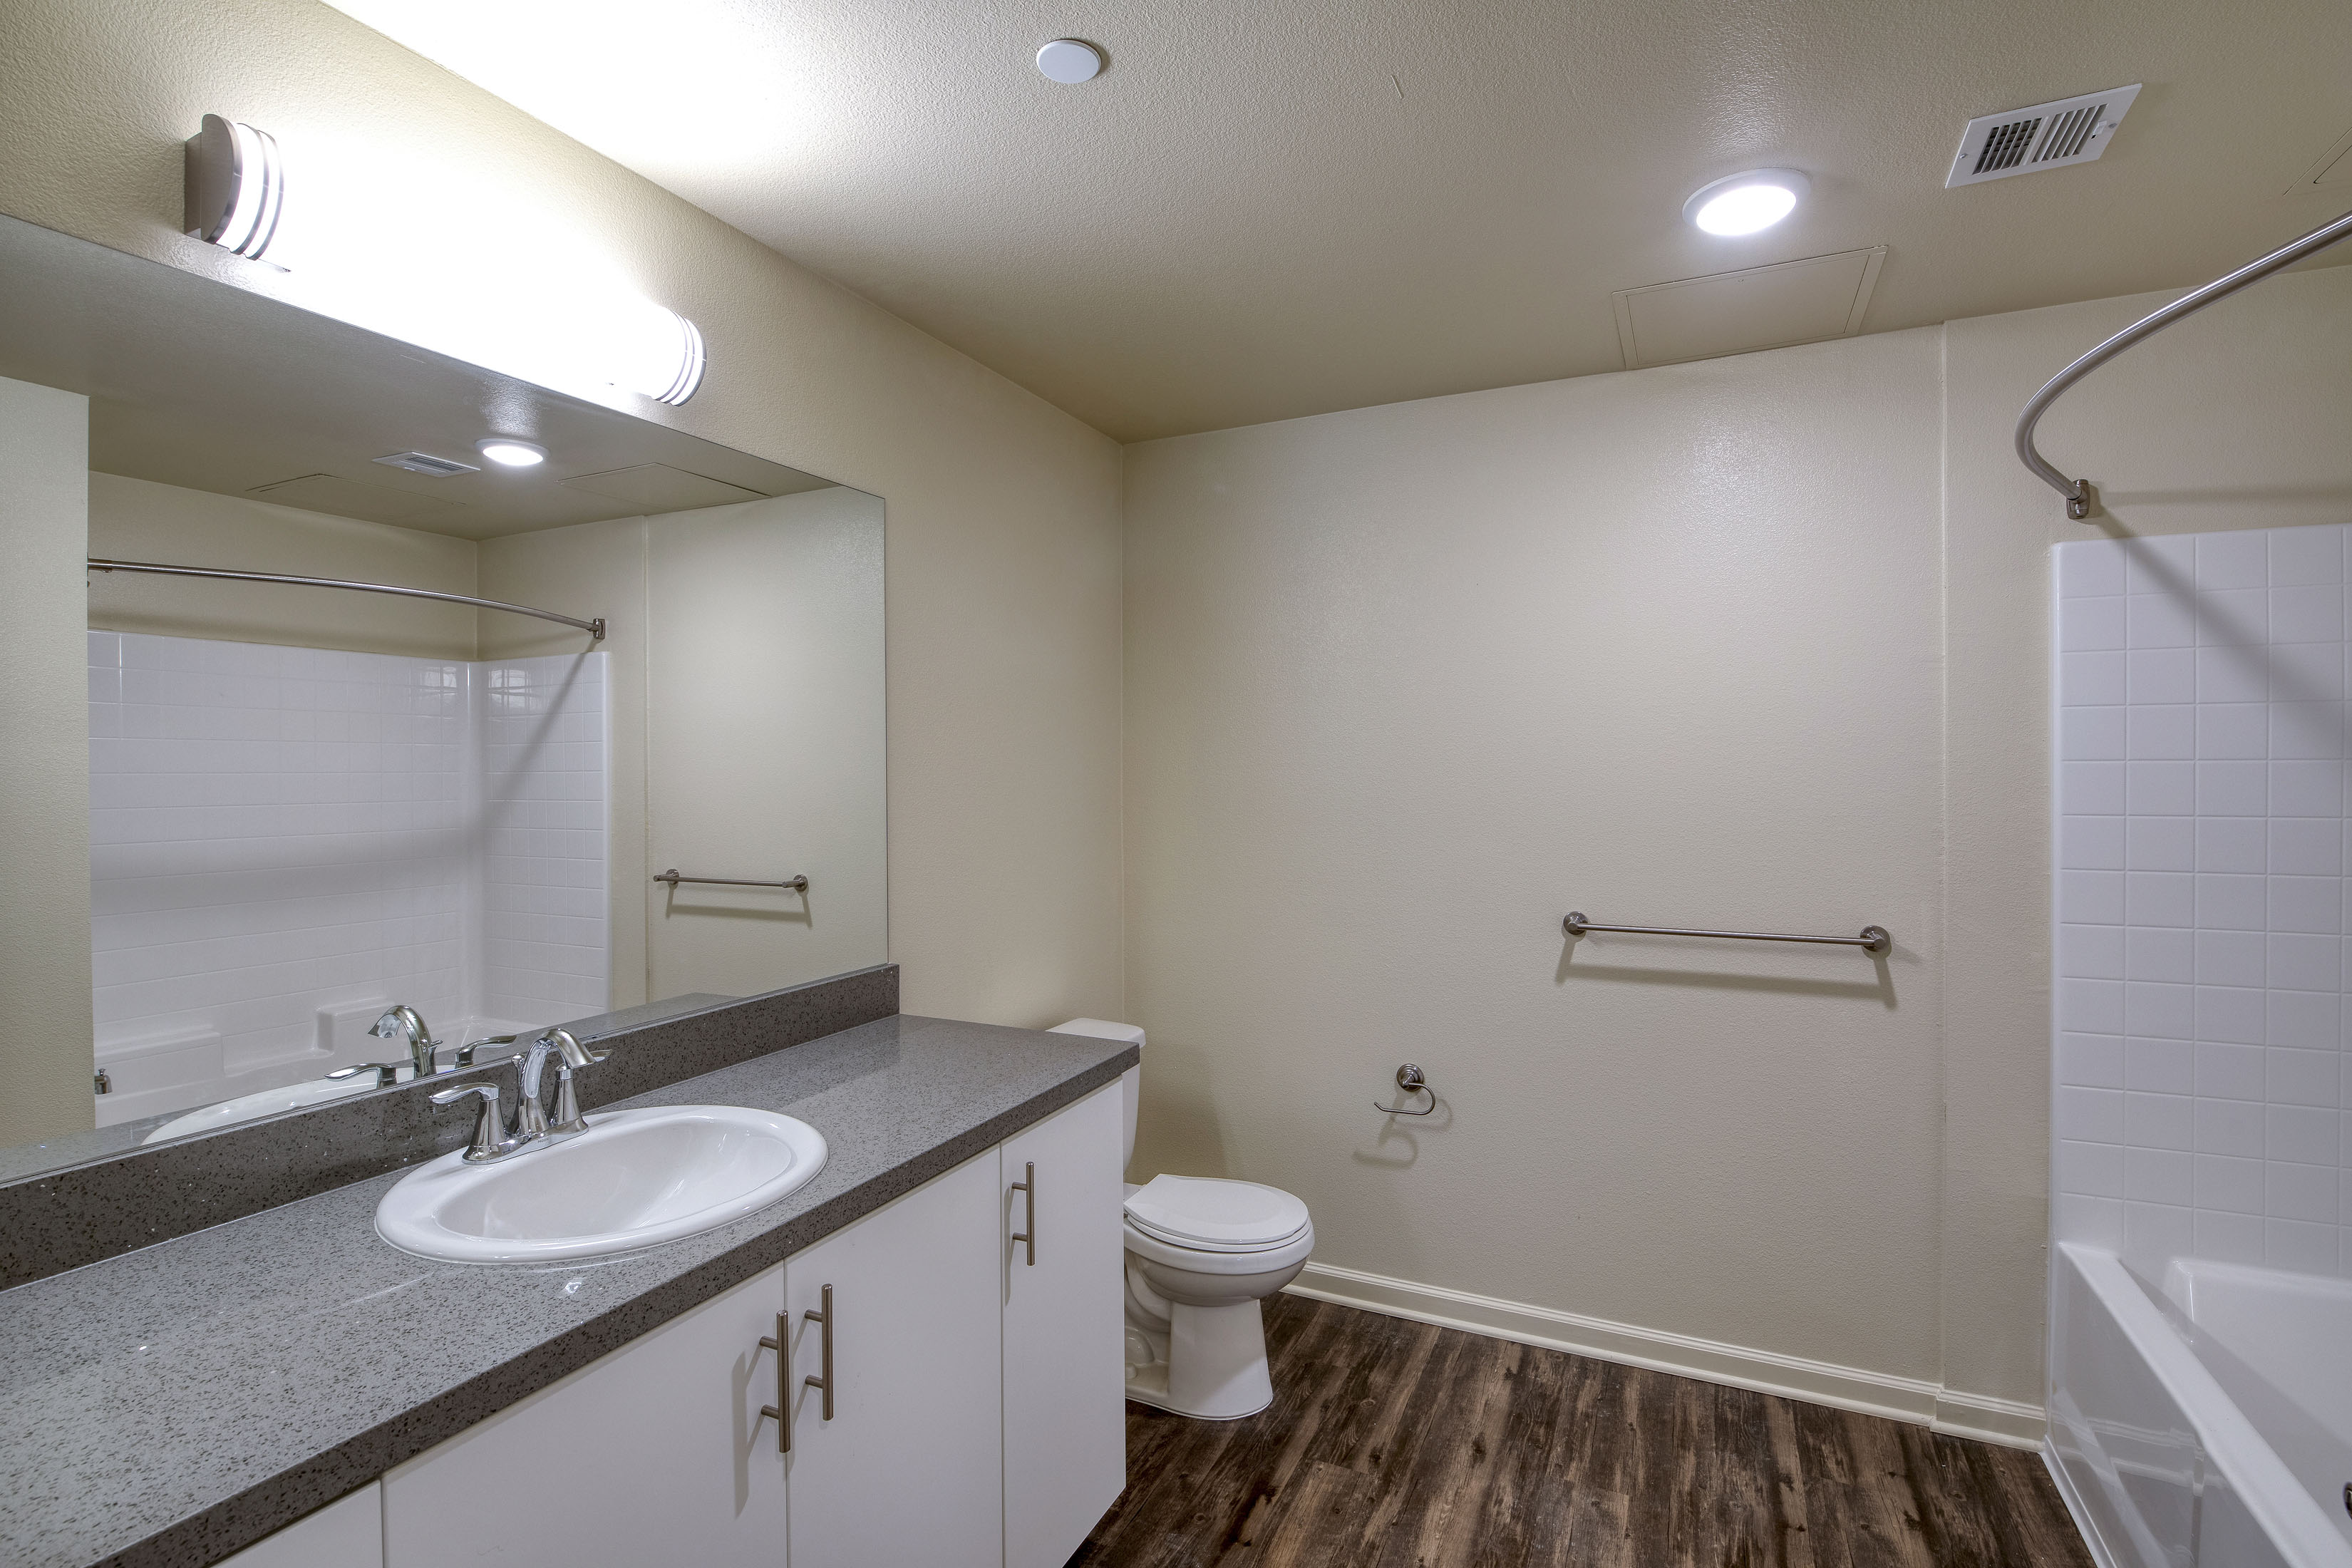 C&C_Unit103_Bathroom1_0049b-11x8